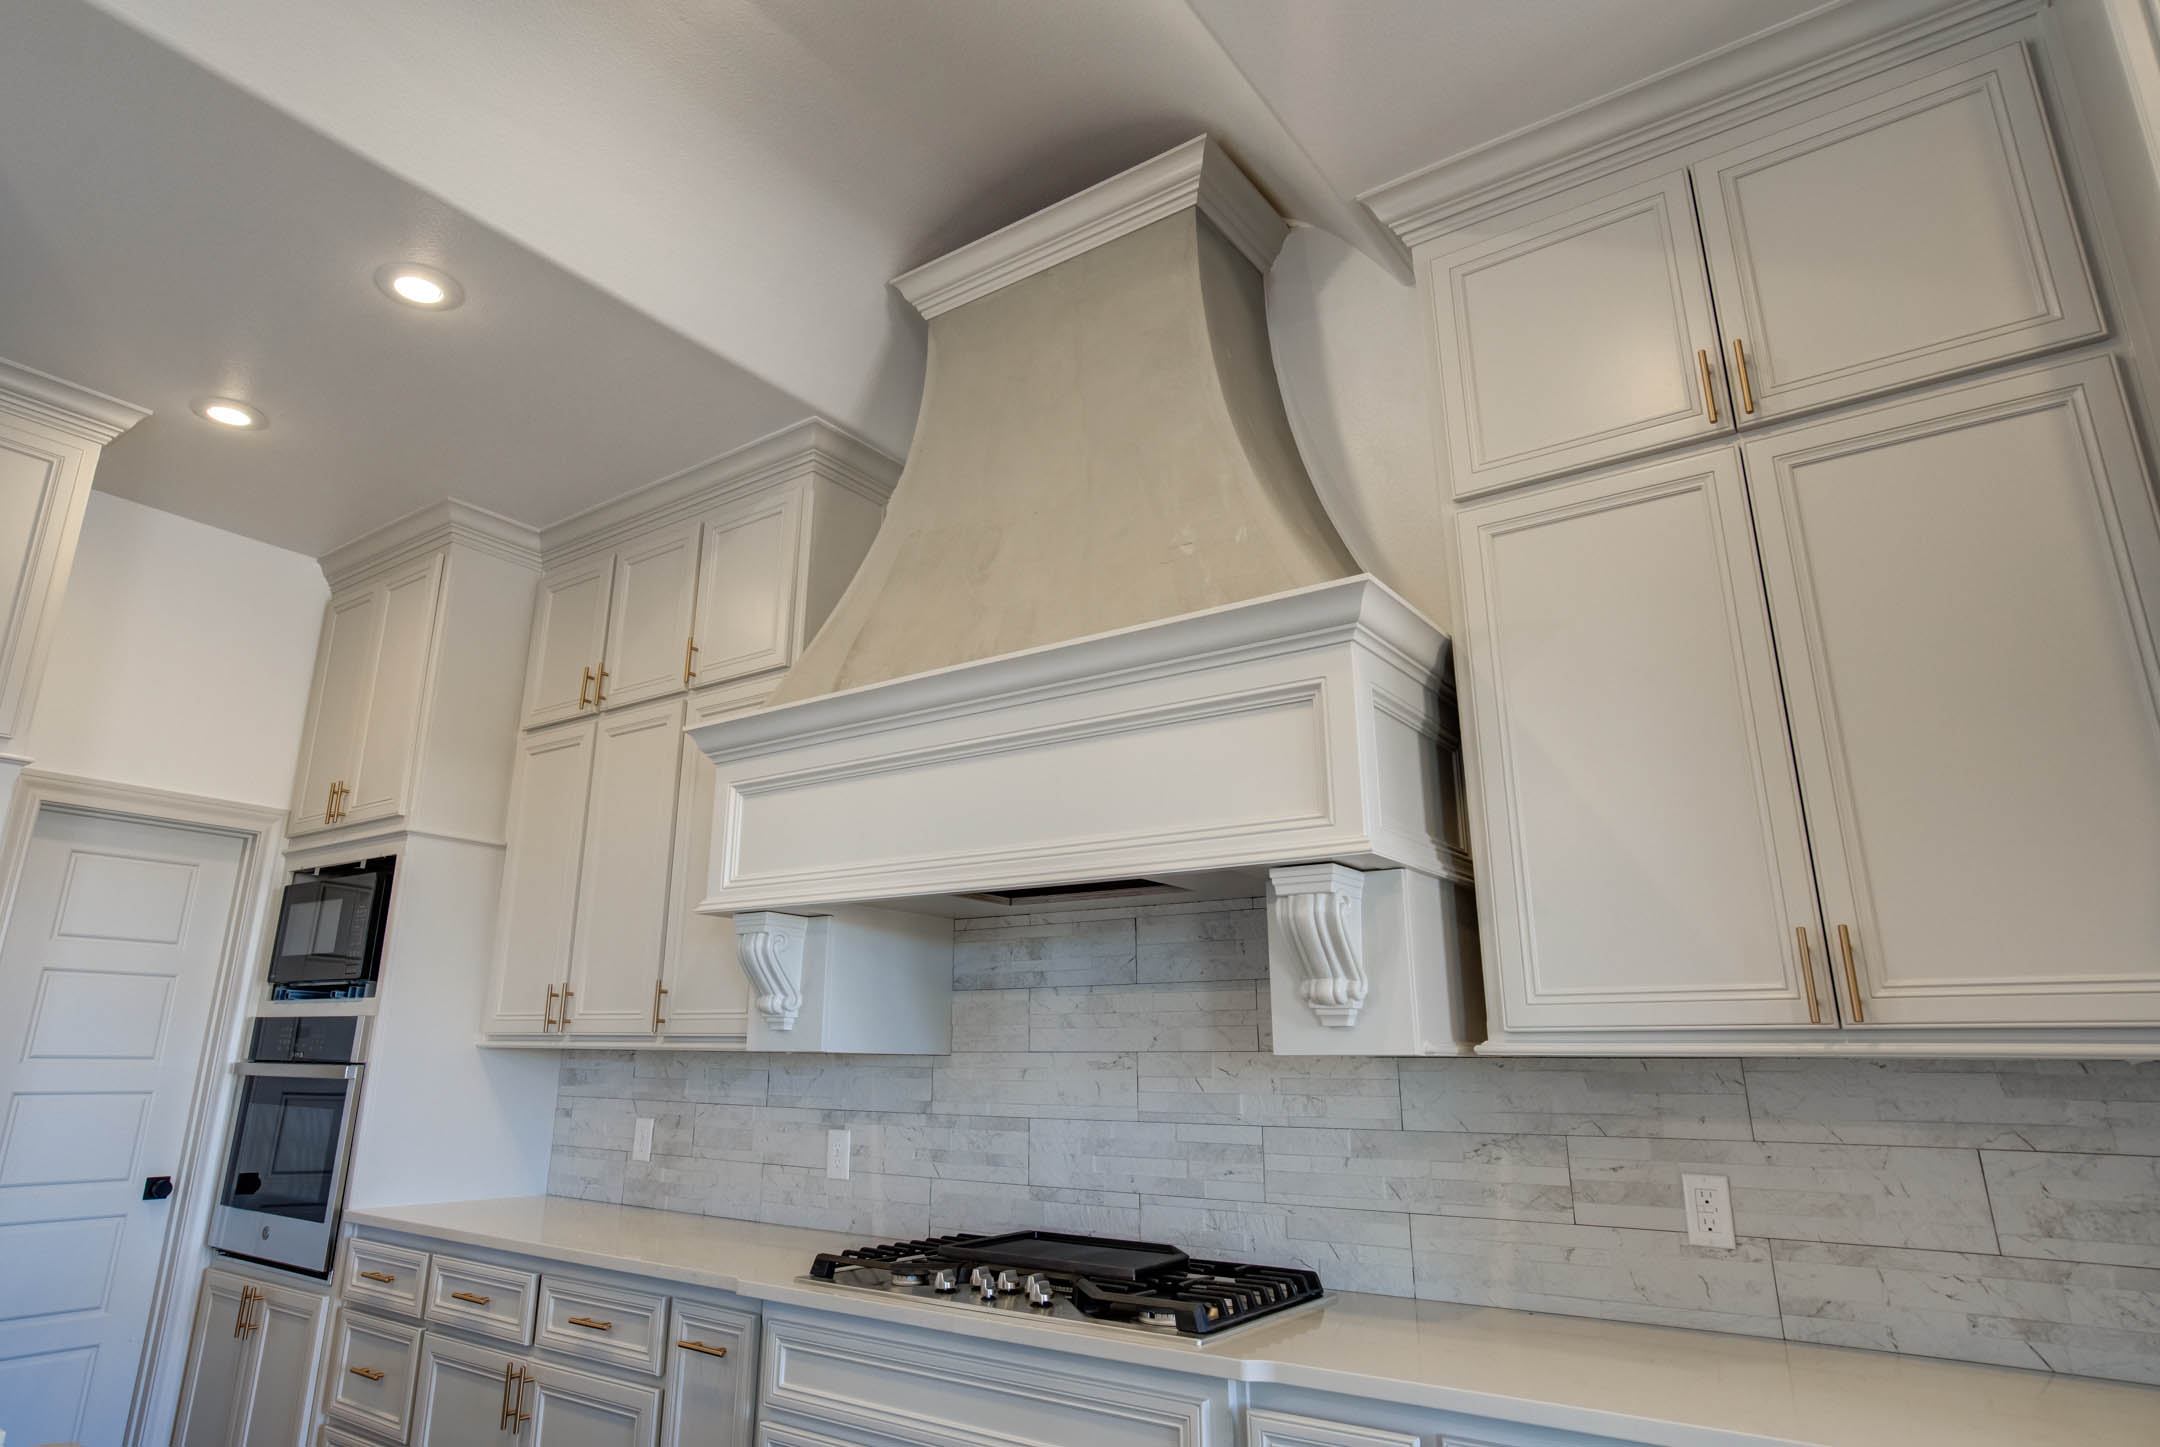 Vent hood in kitchen of custom home near Lubbock.